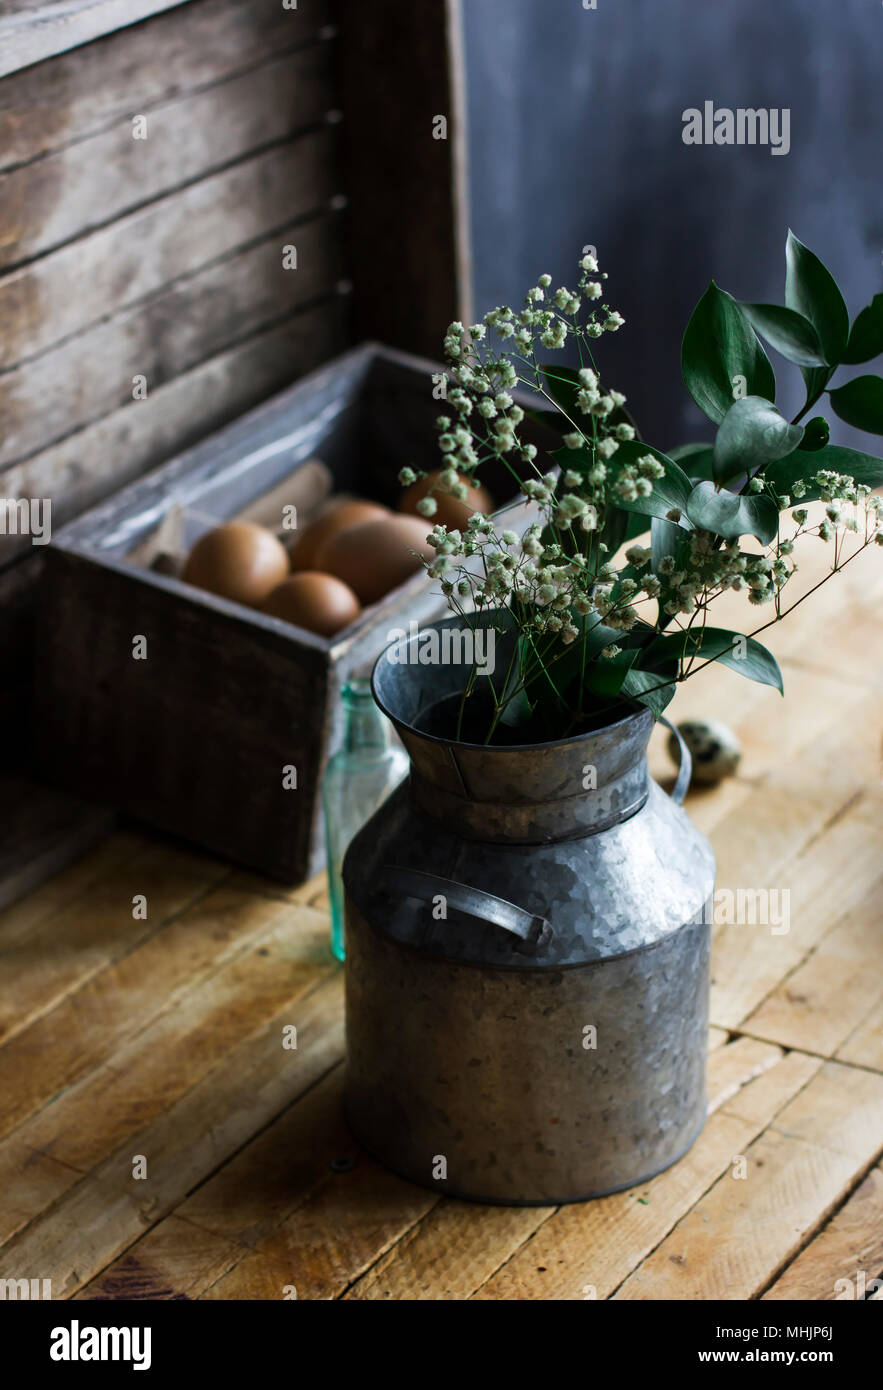 Rustic bouquet of herbs in aluminum cans, chicken eggs in box on the table Stock Photo